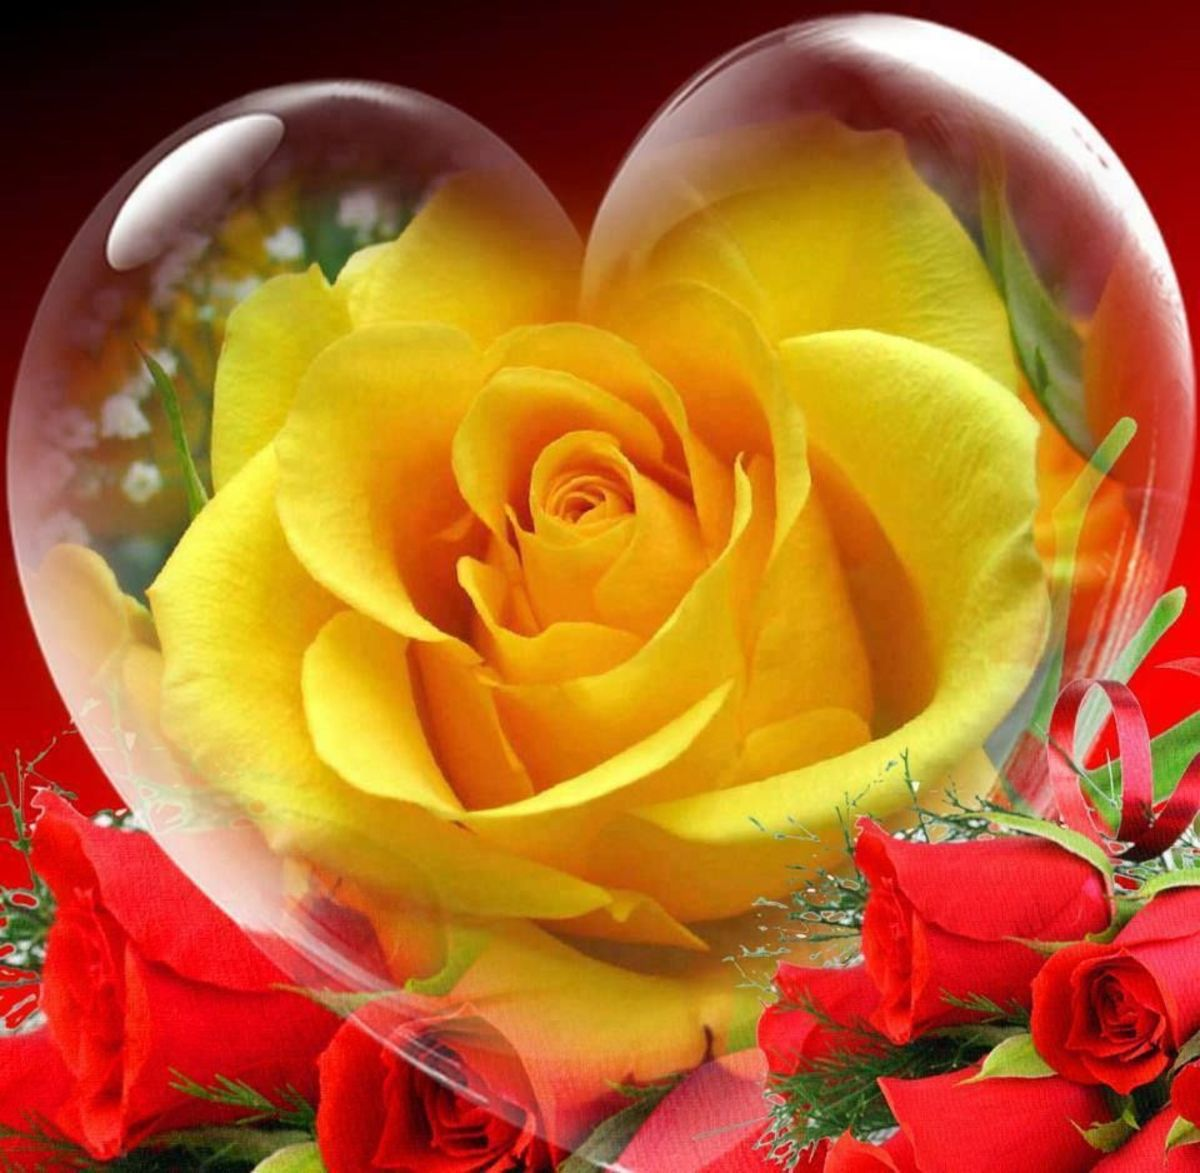 The Heart and the Rose. Friday's Inspiration 9, a Soulful Offering to the Writer Ann Carr